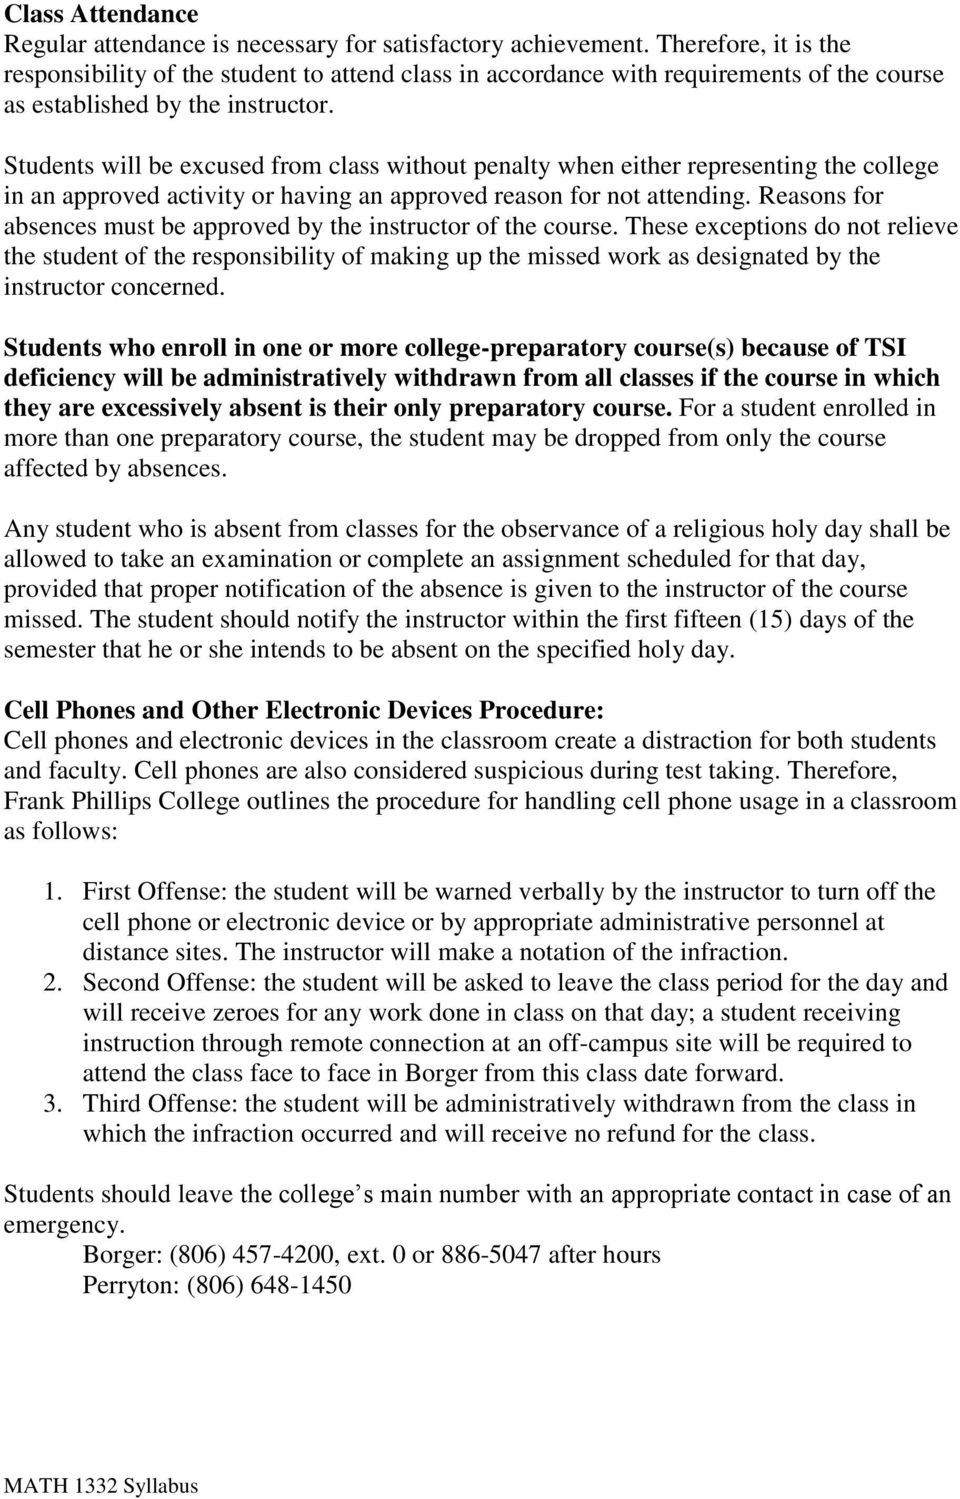 Students will be excused from class without penalty when either representing the college in an approved activity or having an approved reason for not attending.